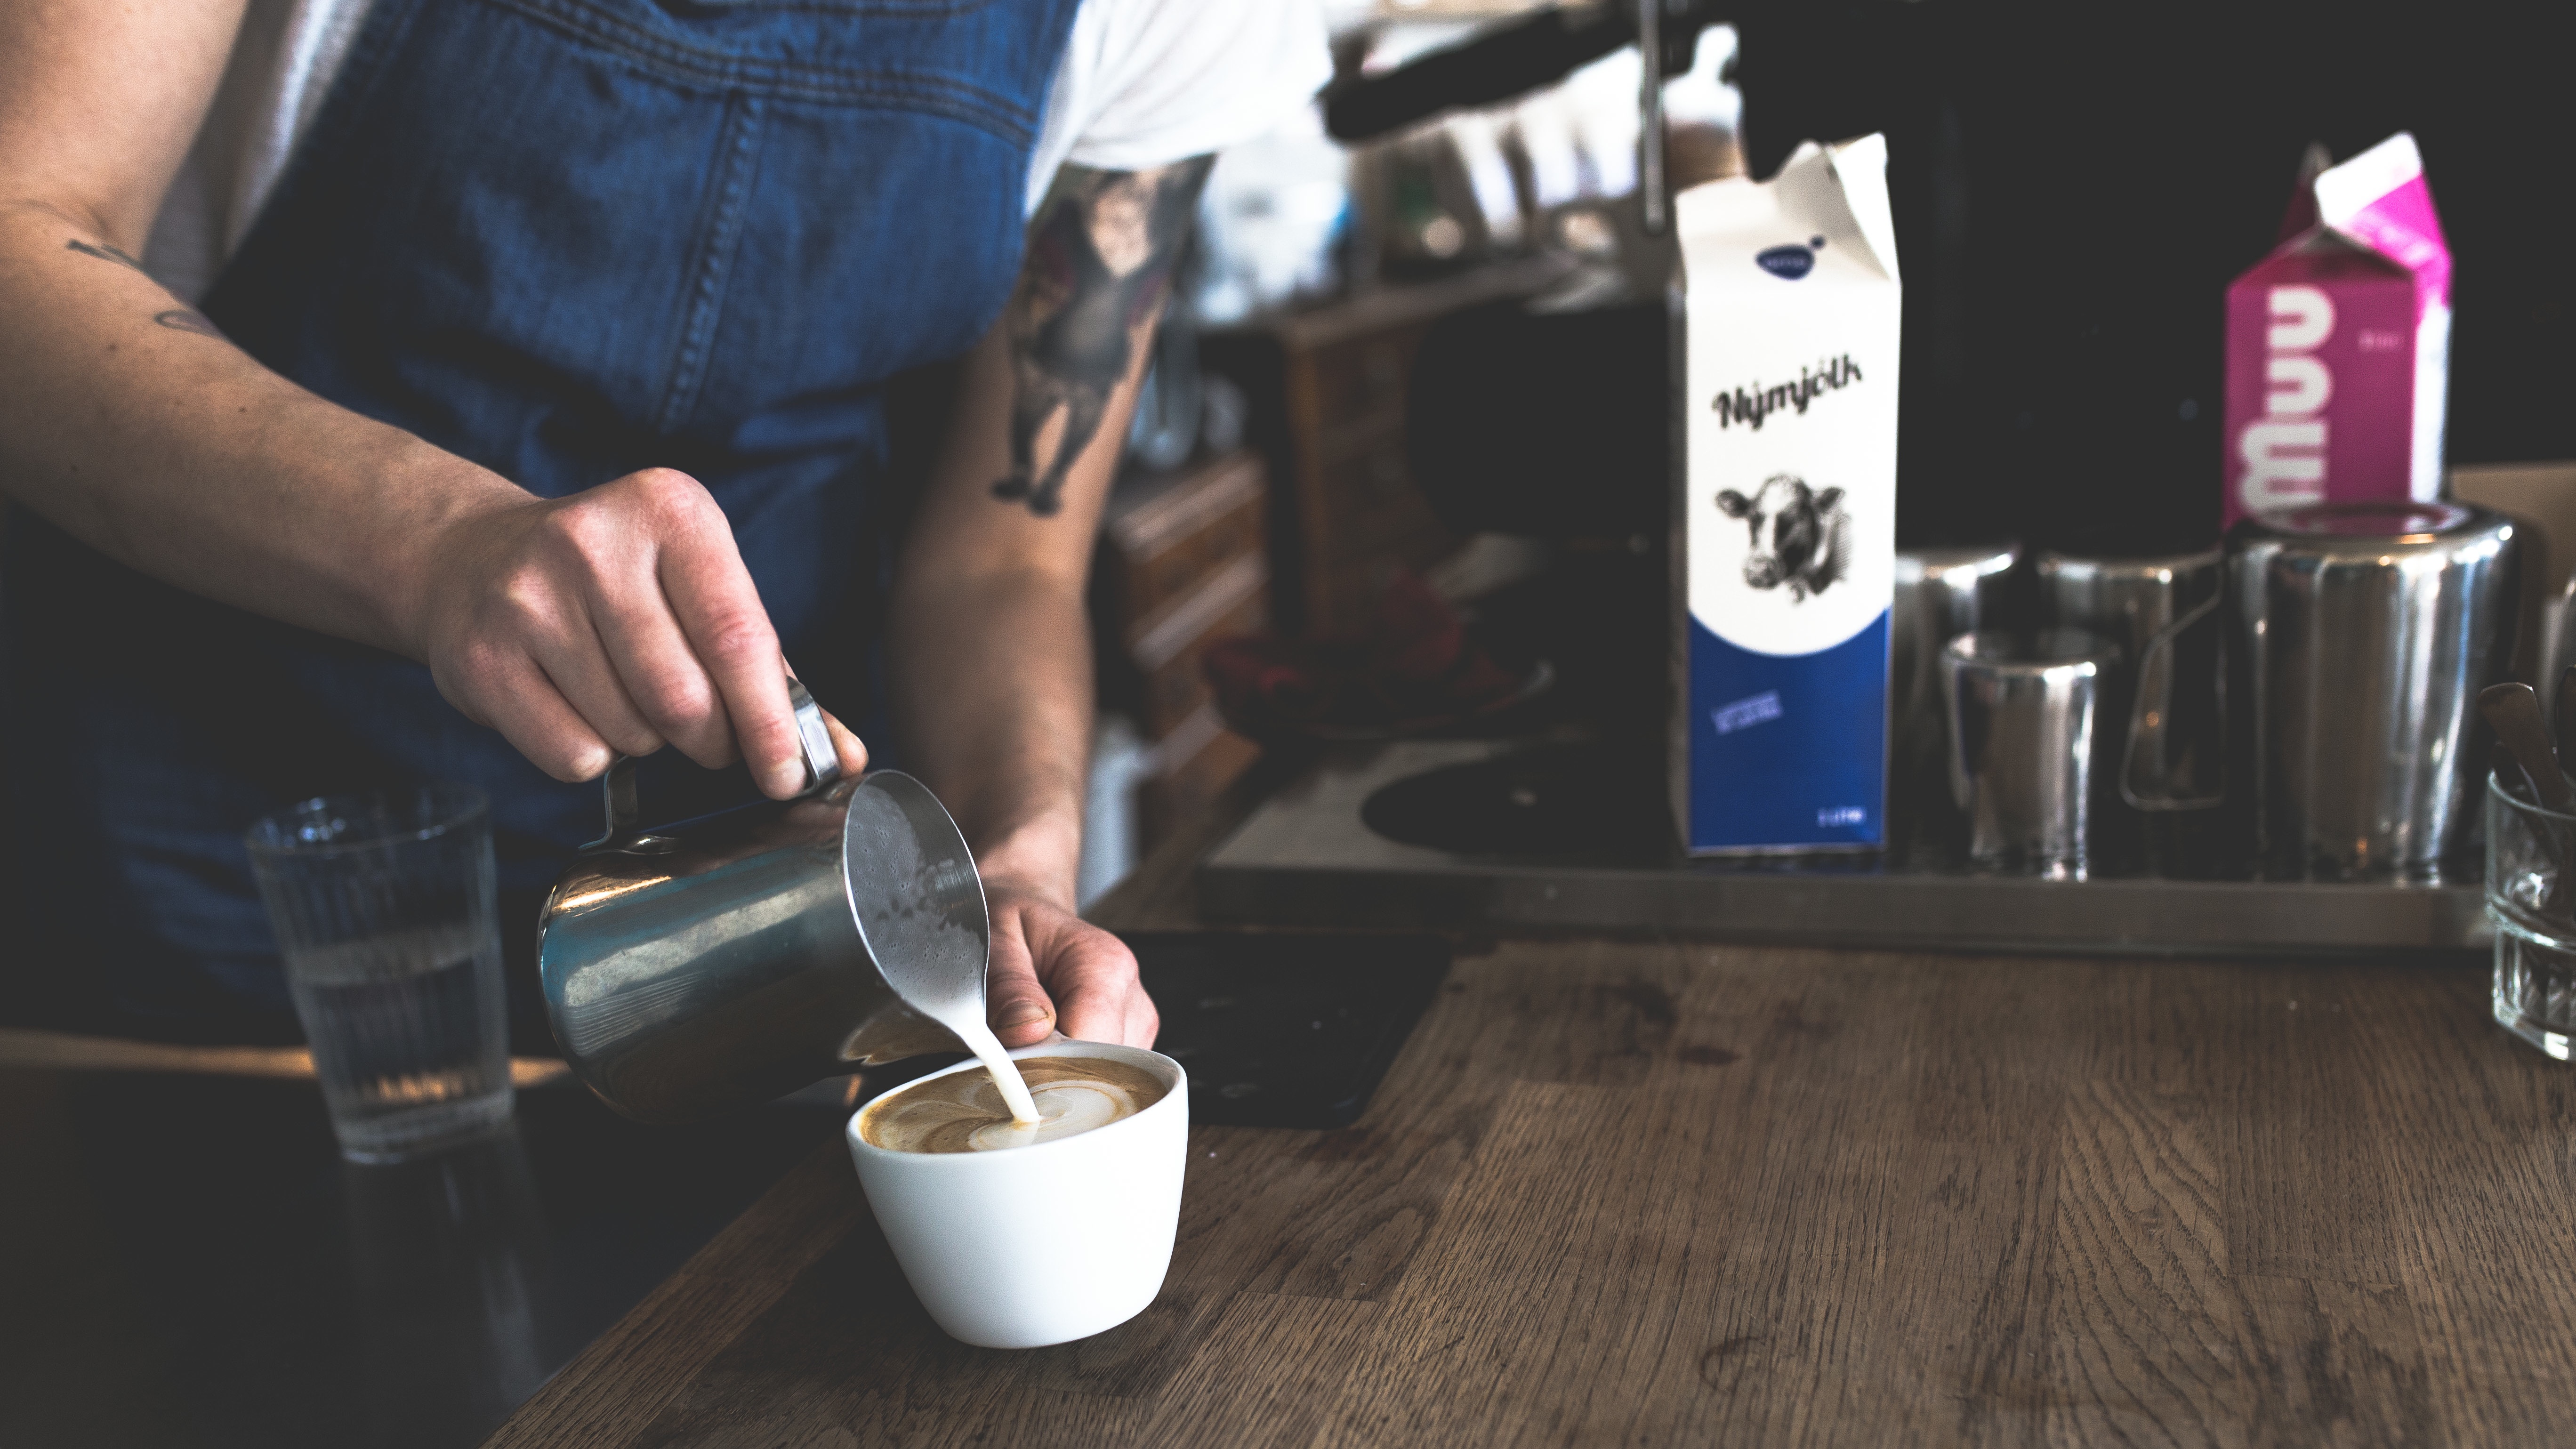 Barista performing job listed in restaurant employee handbook